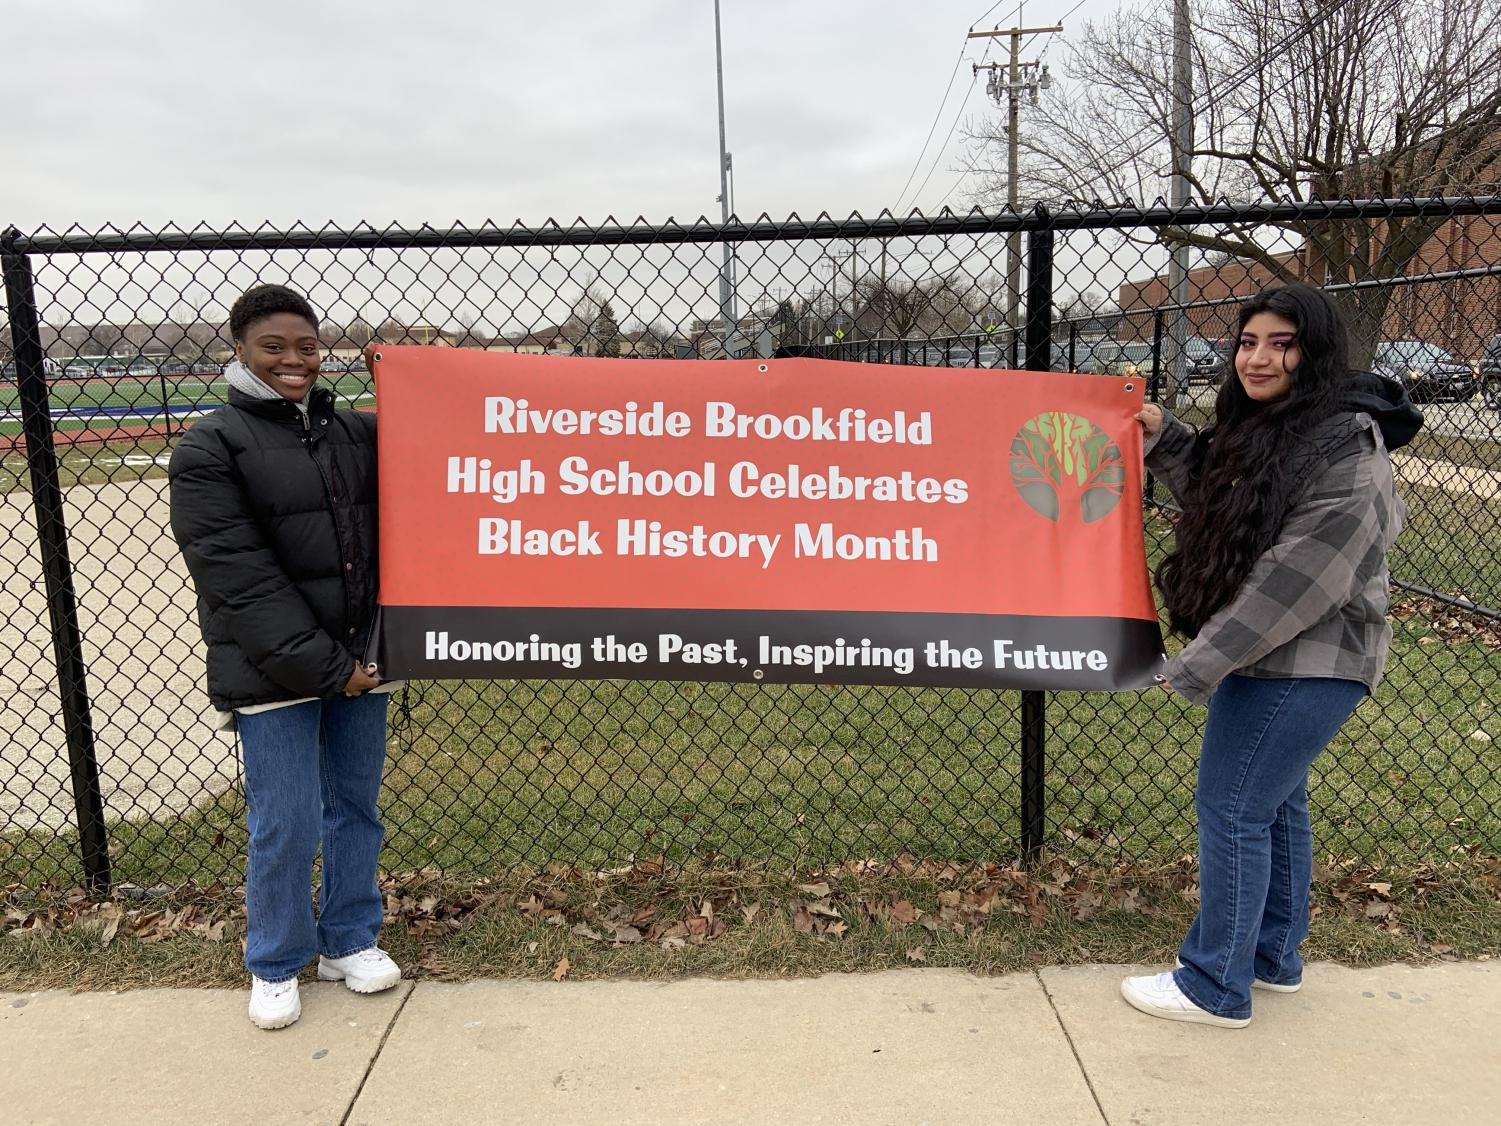 Shalah Russell and Miranda Bucio hanging up a sign for Black History Month.